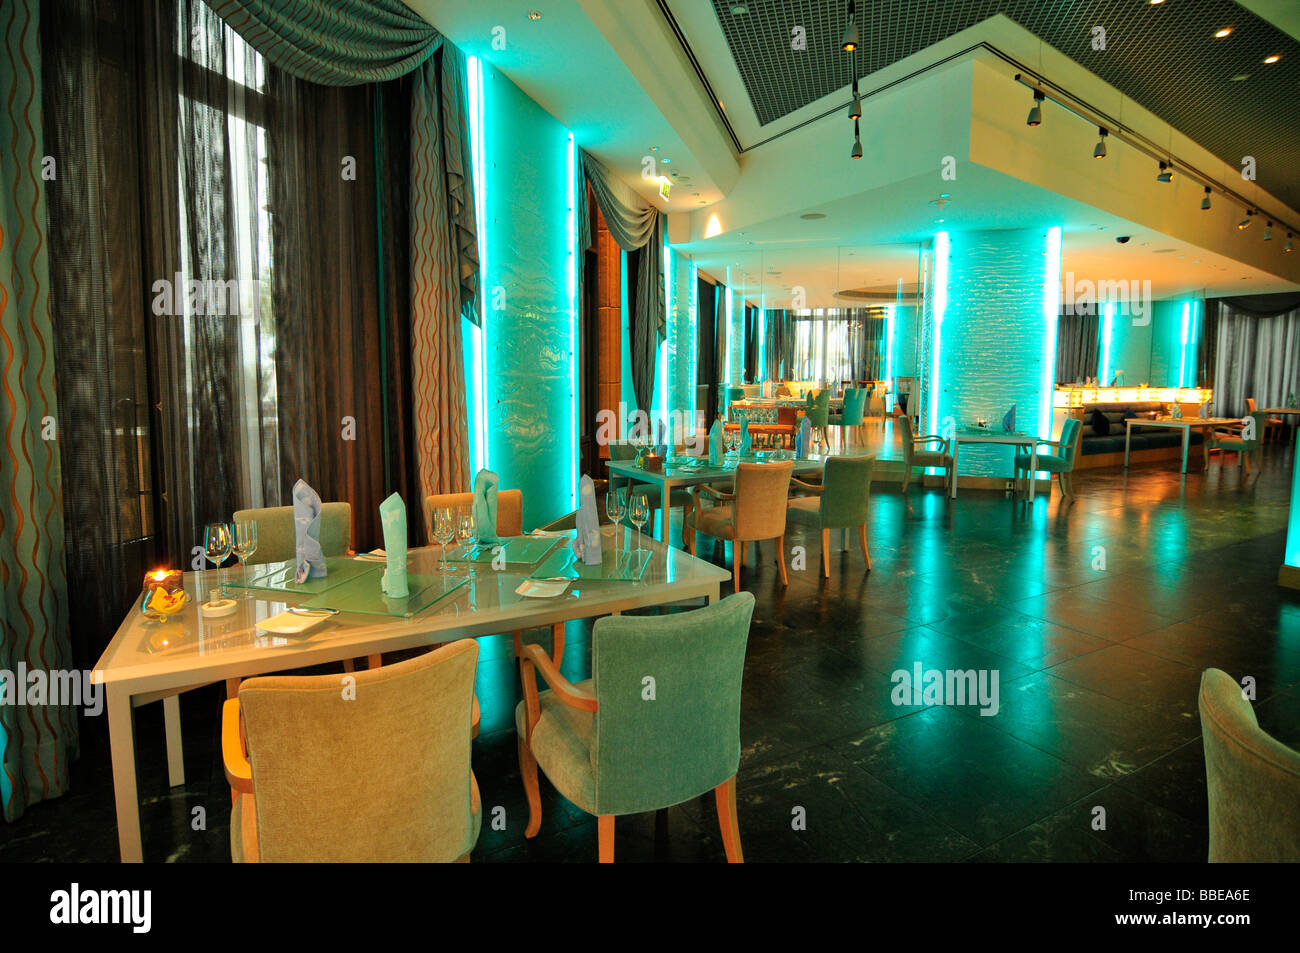 Stylish Interior Of The Sayad Seafood Restaurant In The Emirates Stock Photo Alamy